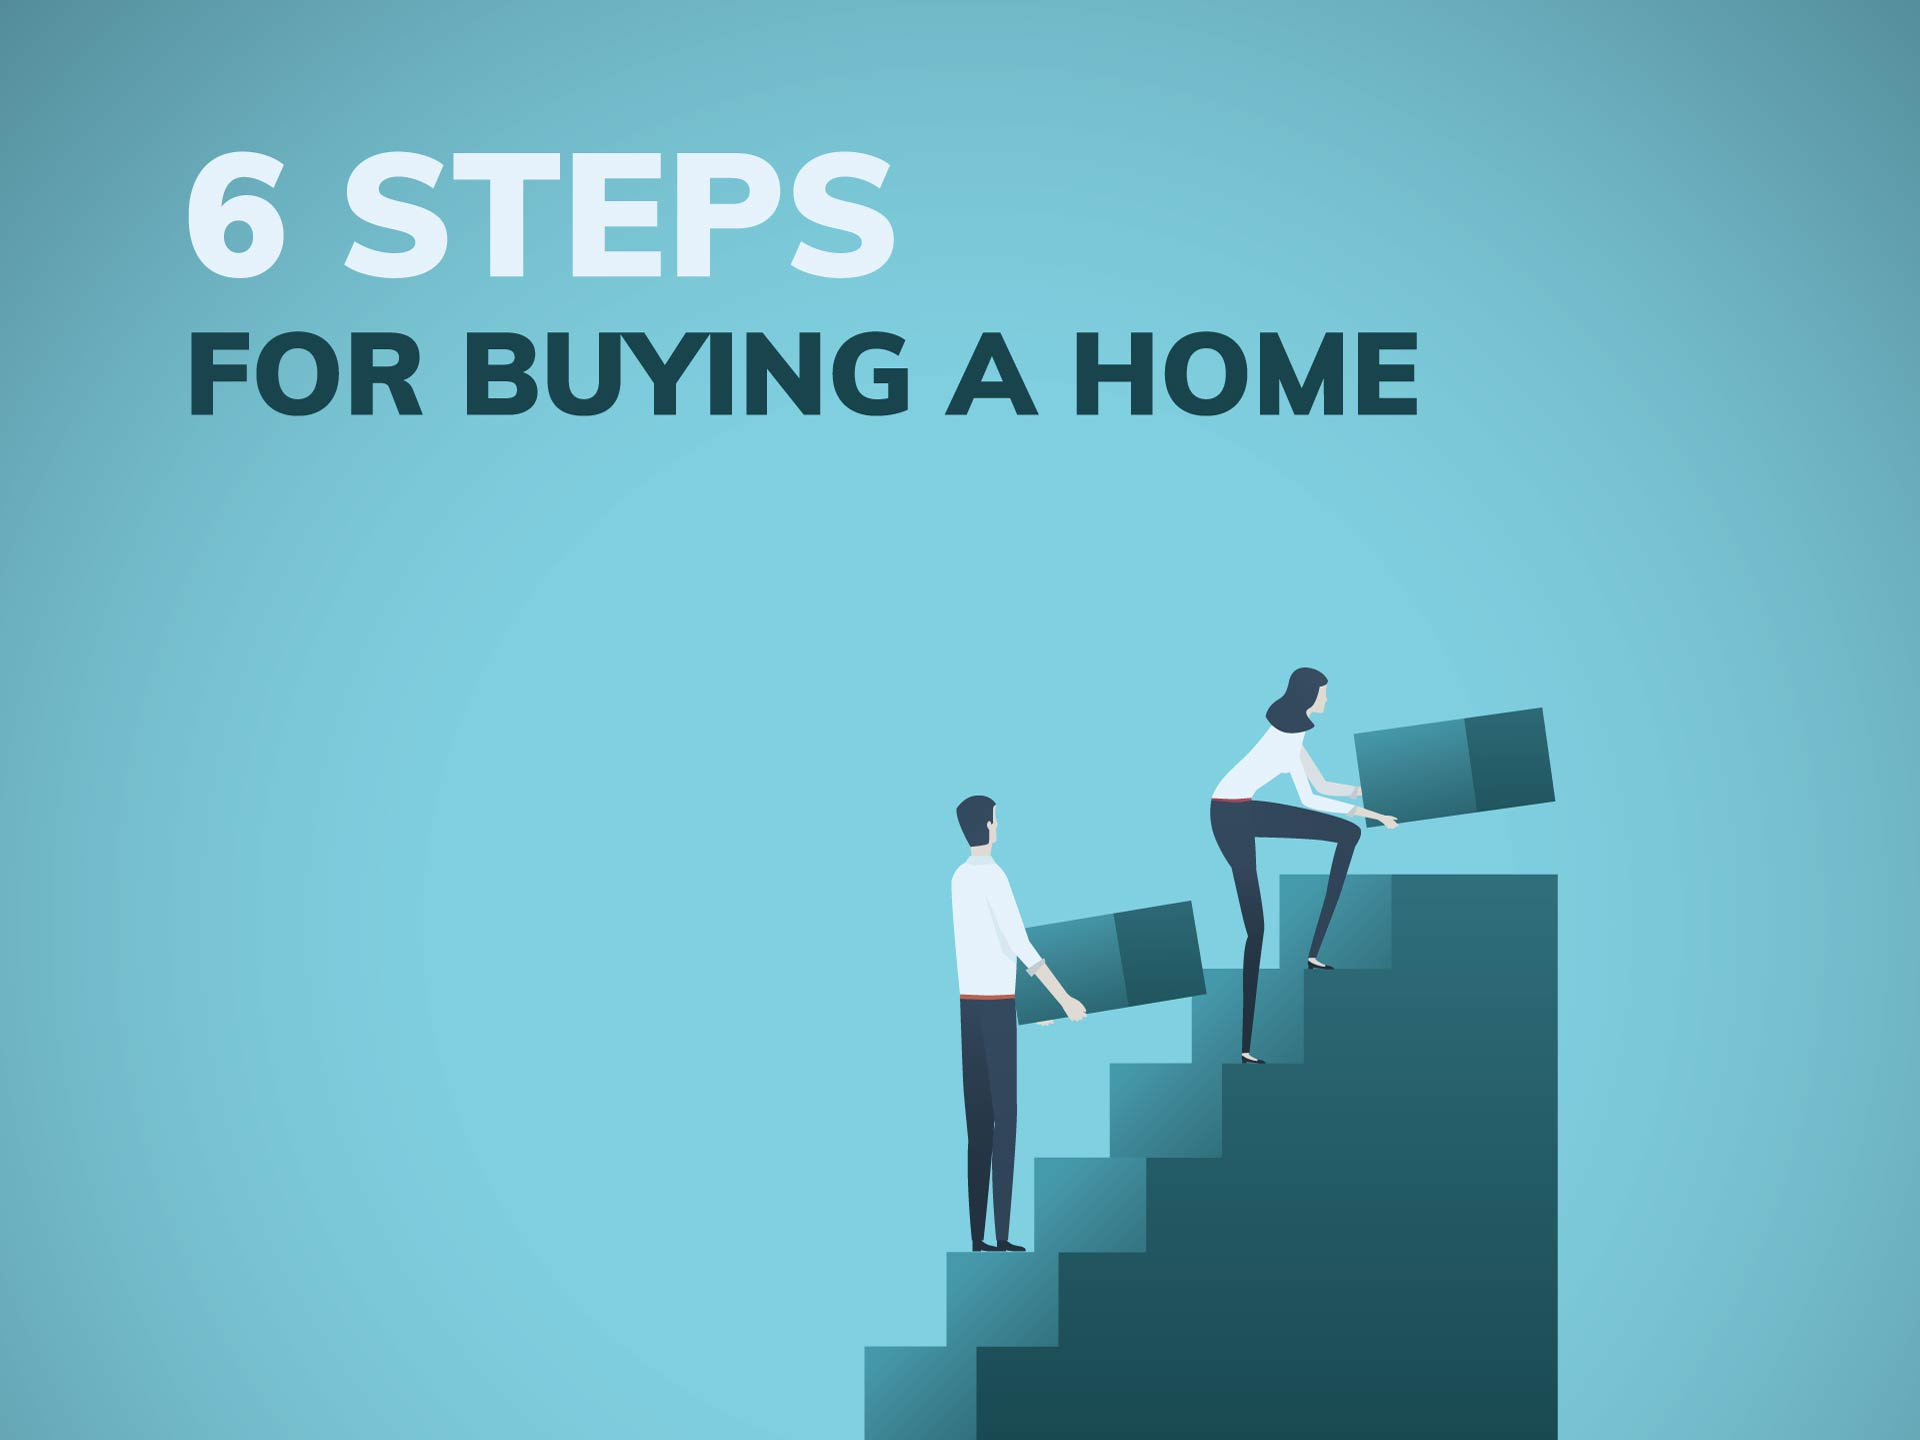 A couple building stairs toward homebuying